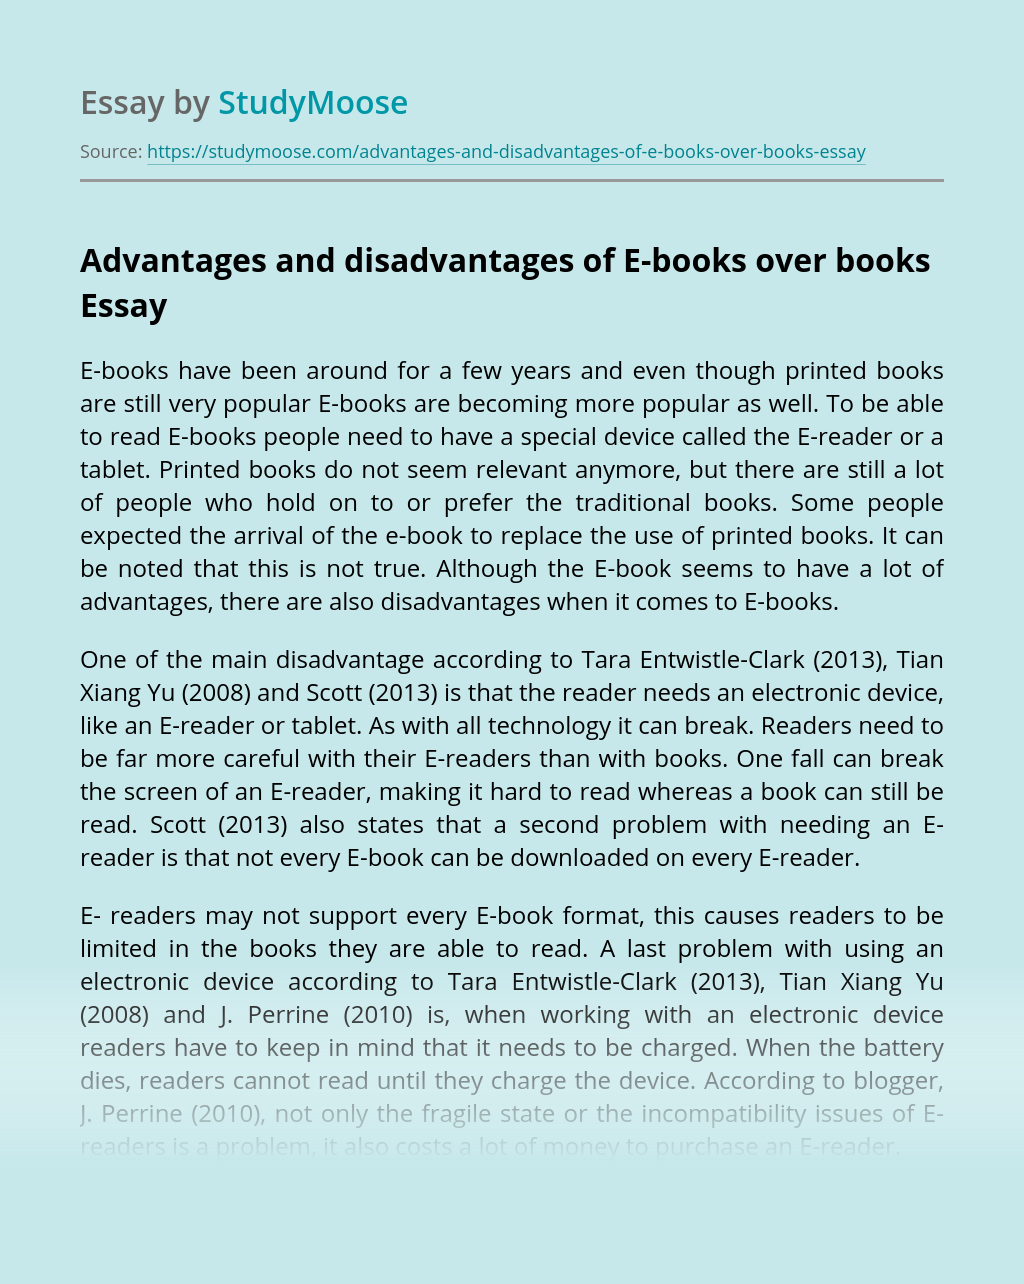 Advantages and disadvantages of E-books over books